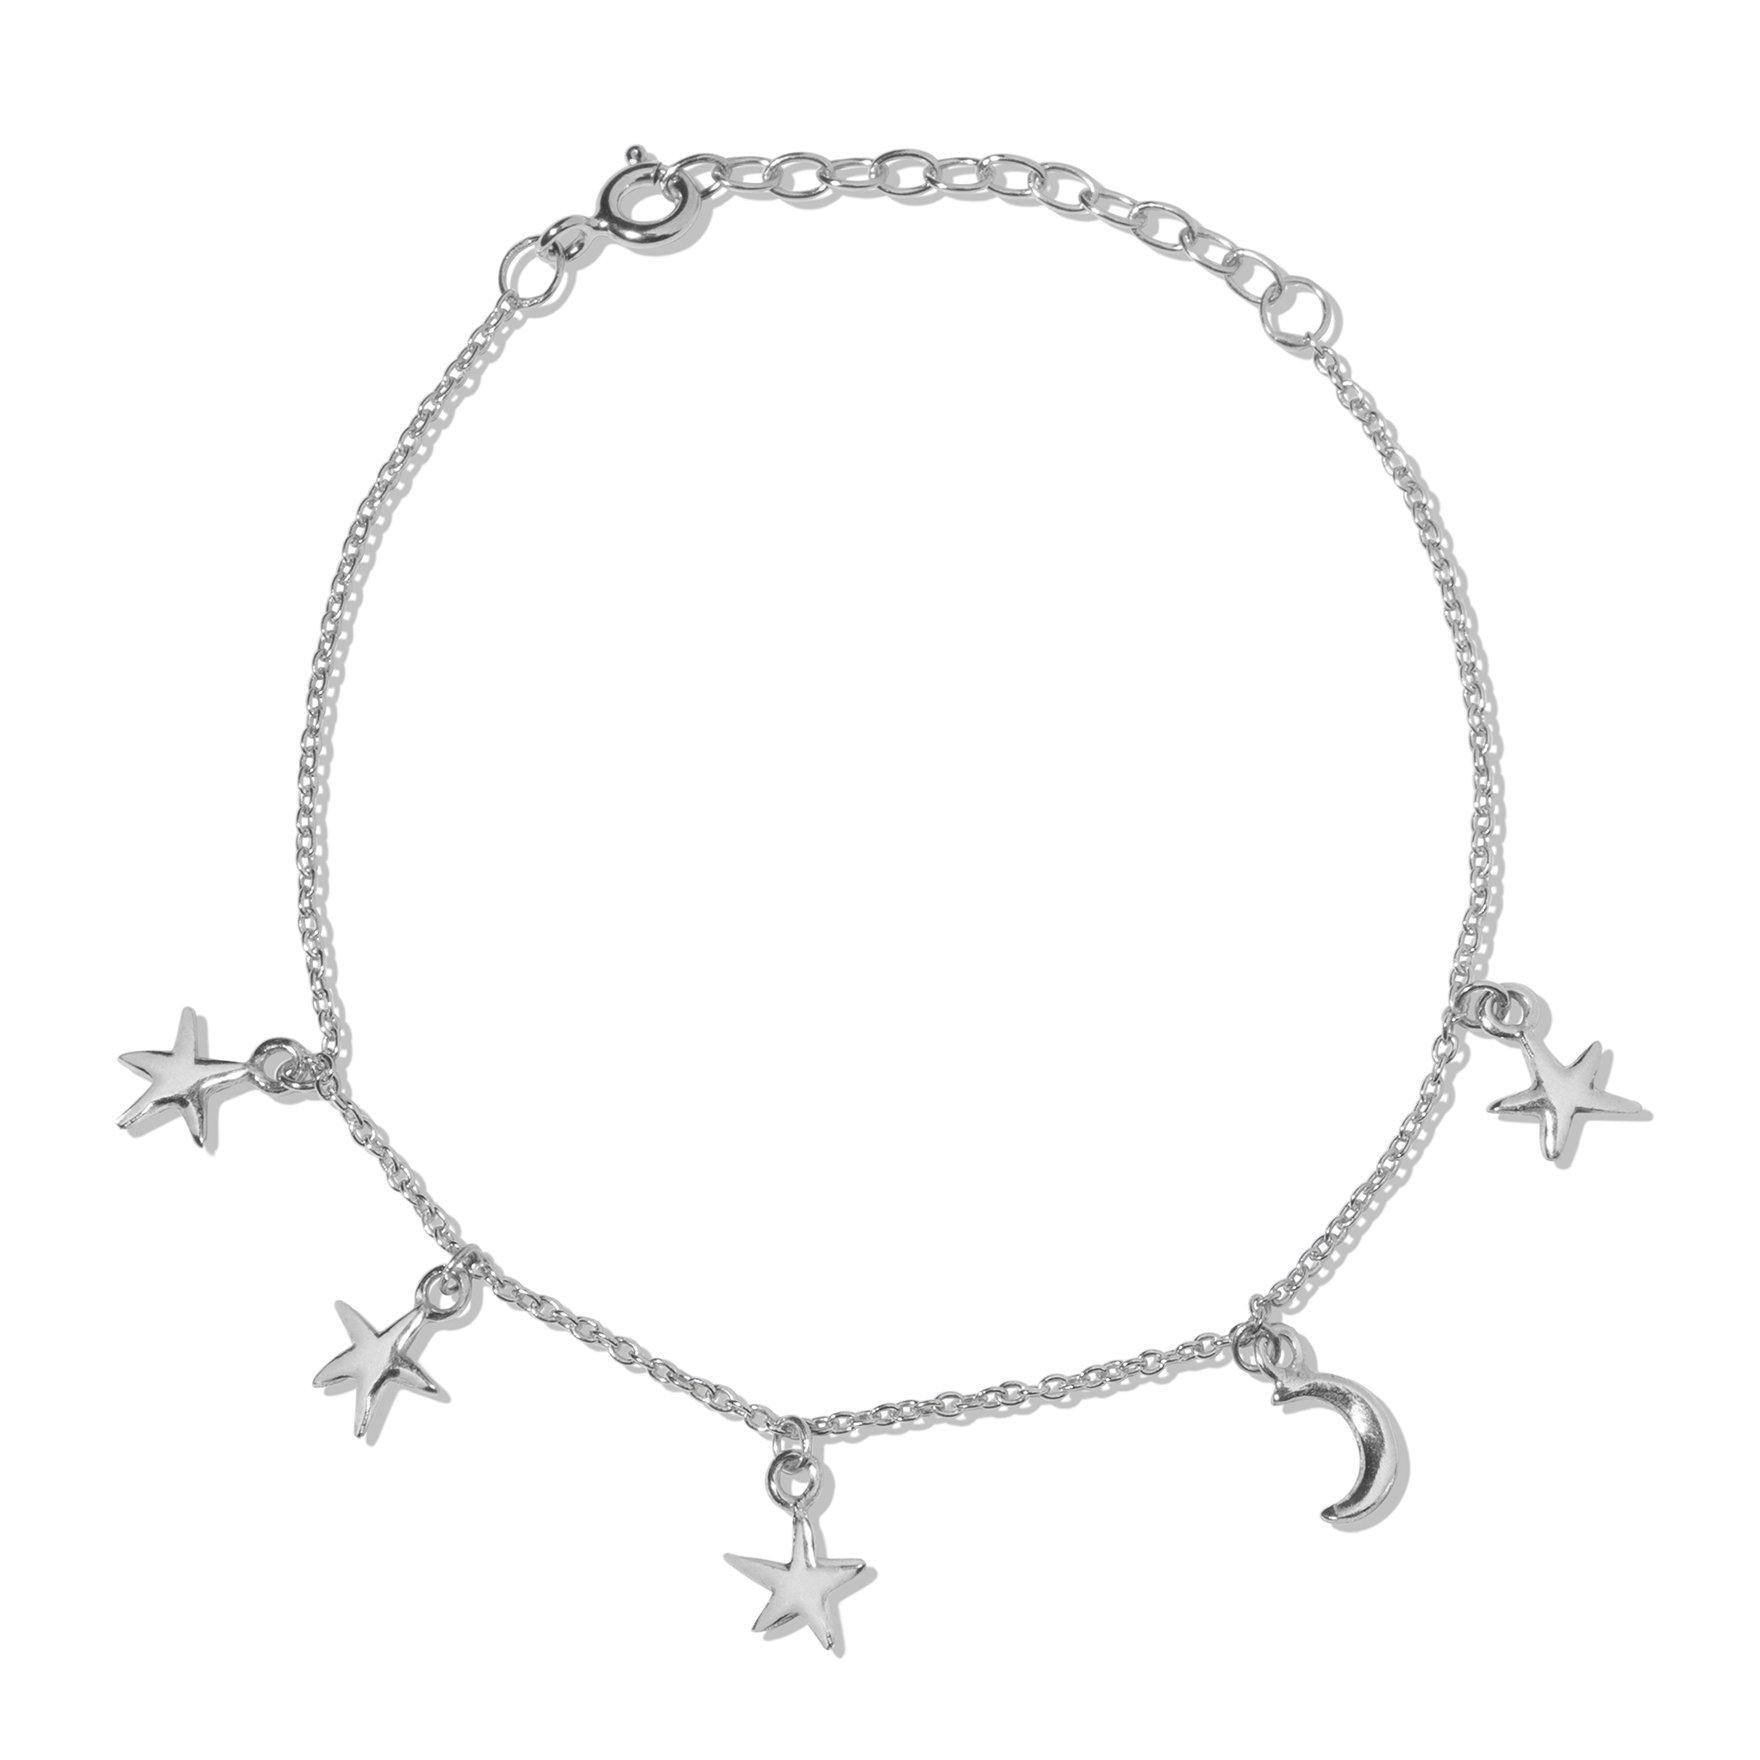 The Starry Night Bracelet in Silver